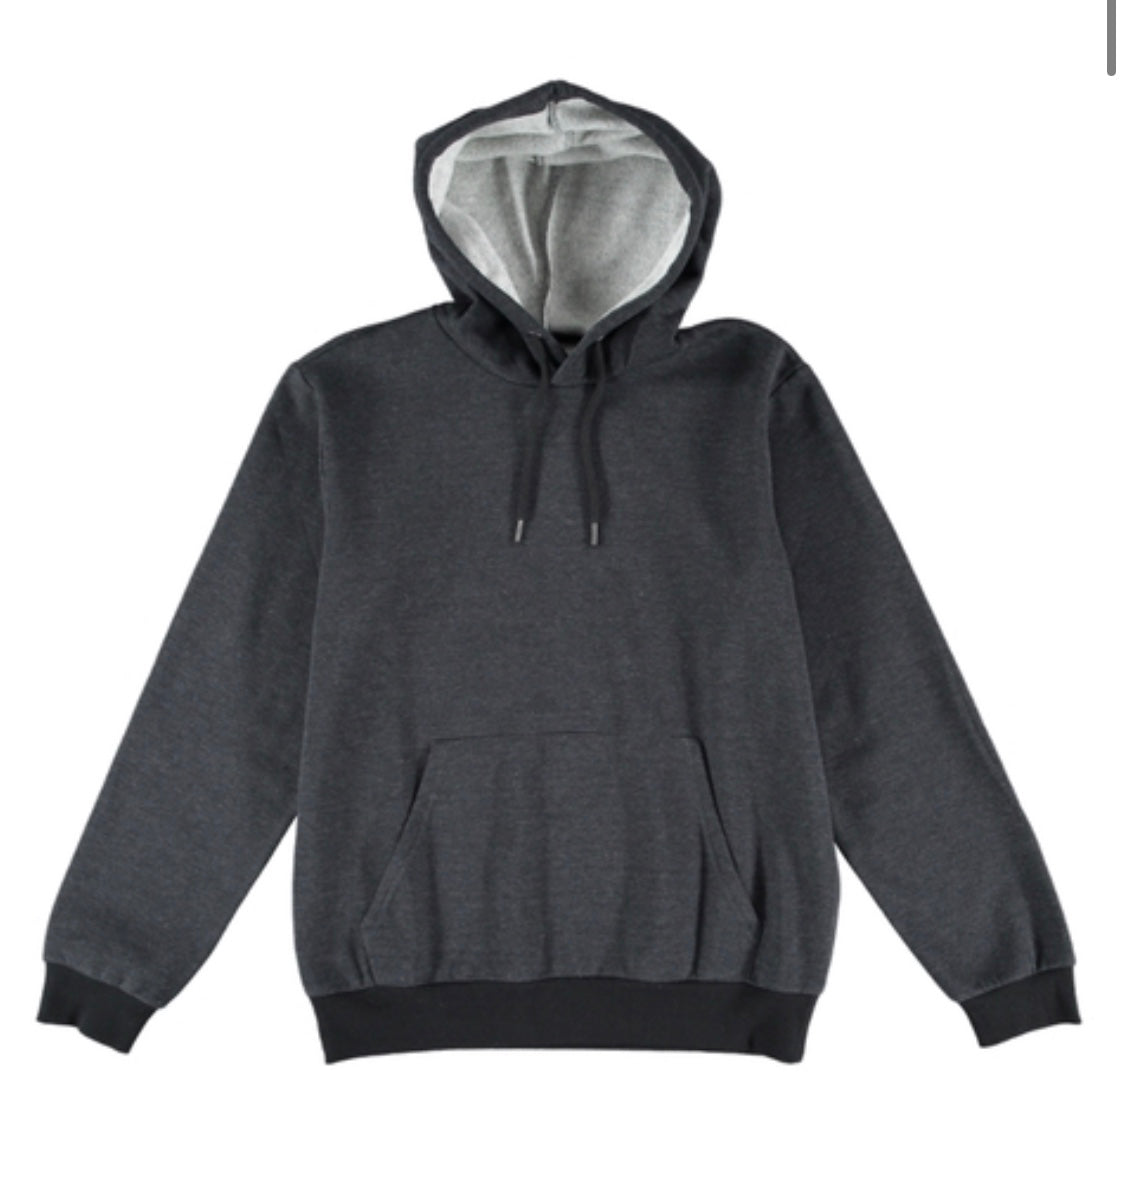 Custom Hoodies - Mens (XS - 2XL)